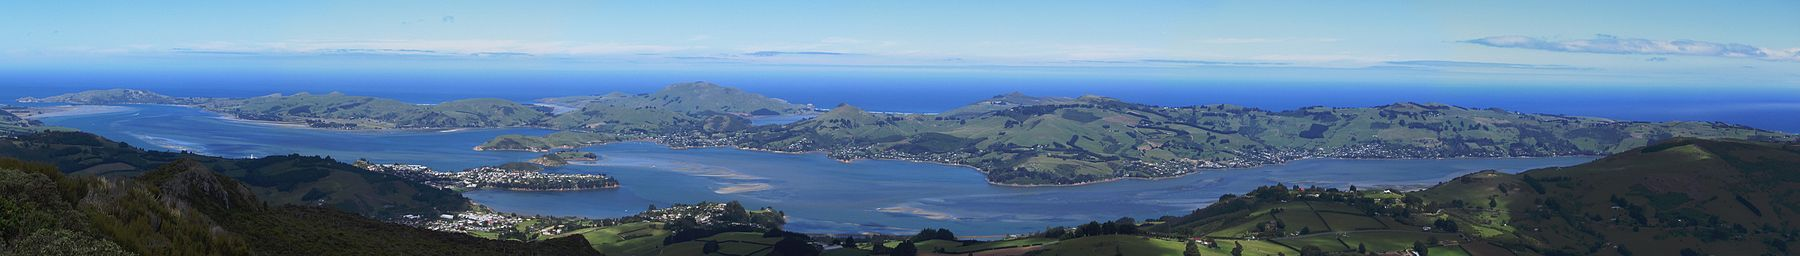 Otago Peninsula from Mount Cargill